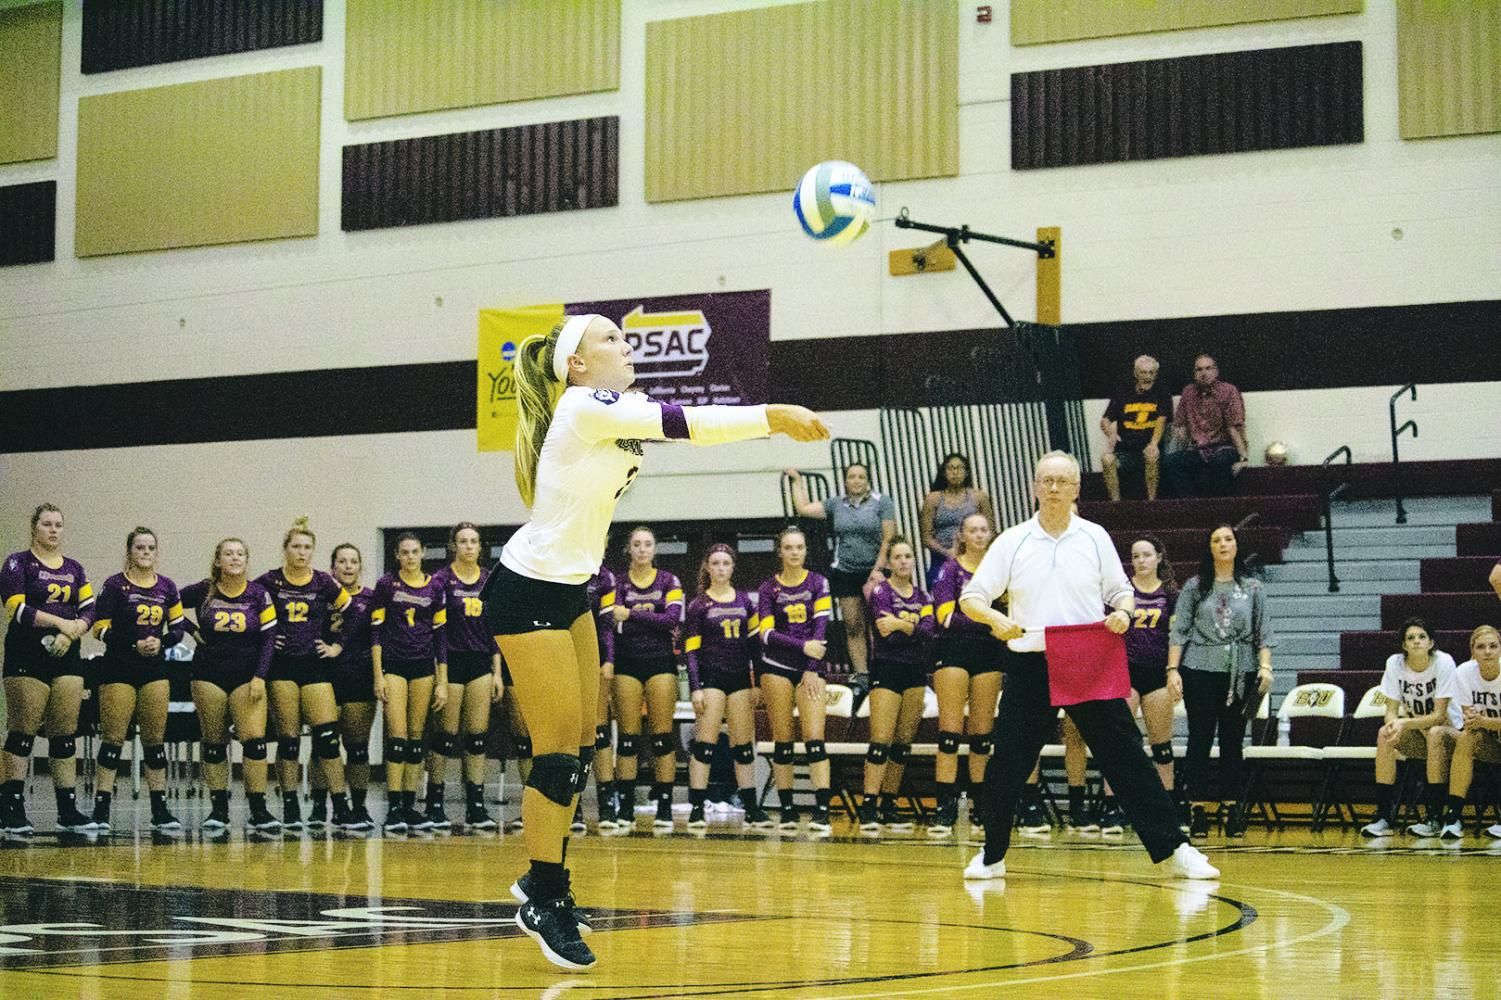 Alyssa Cianciulli (pictured above) set a new school record in digs in the Huskies win over Felician this past Friday.